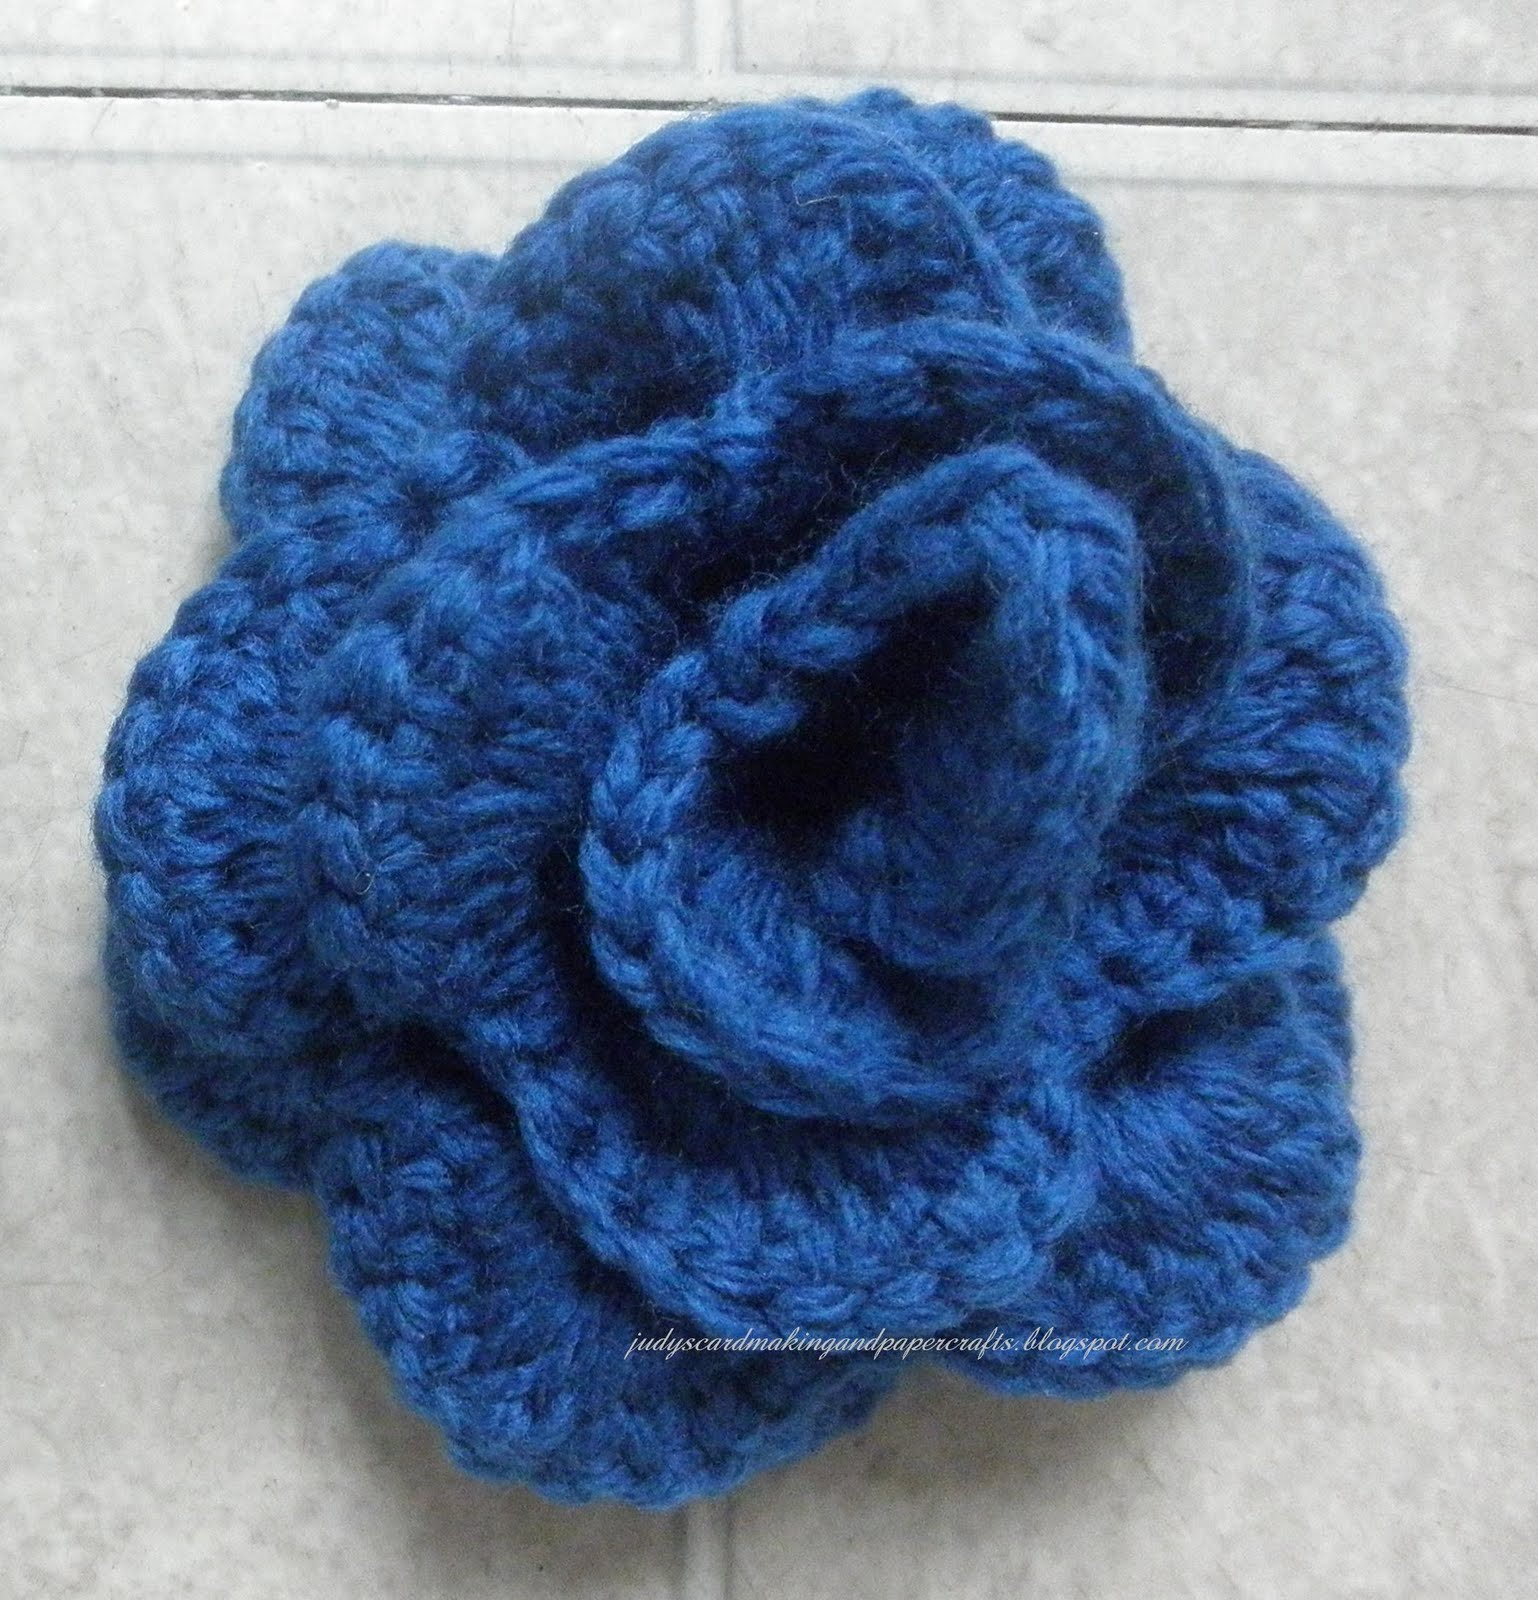 Crocheting Roses : Crochet Roses by Charisse - Fun Crochet: Learn to Crochet the Fun